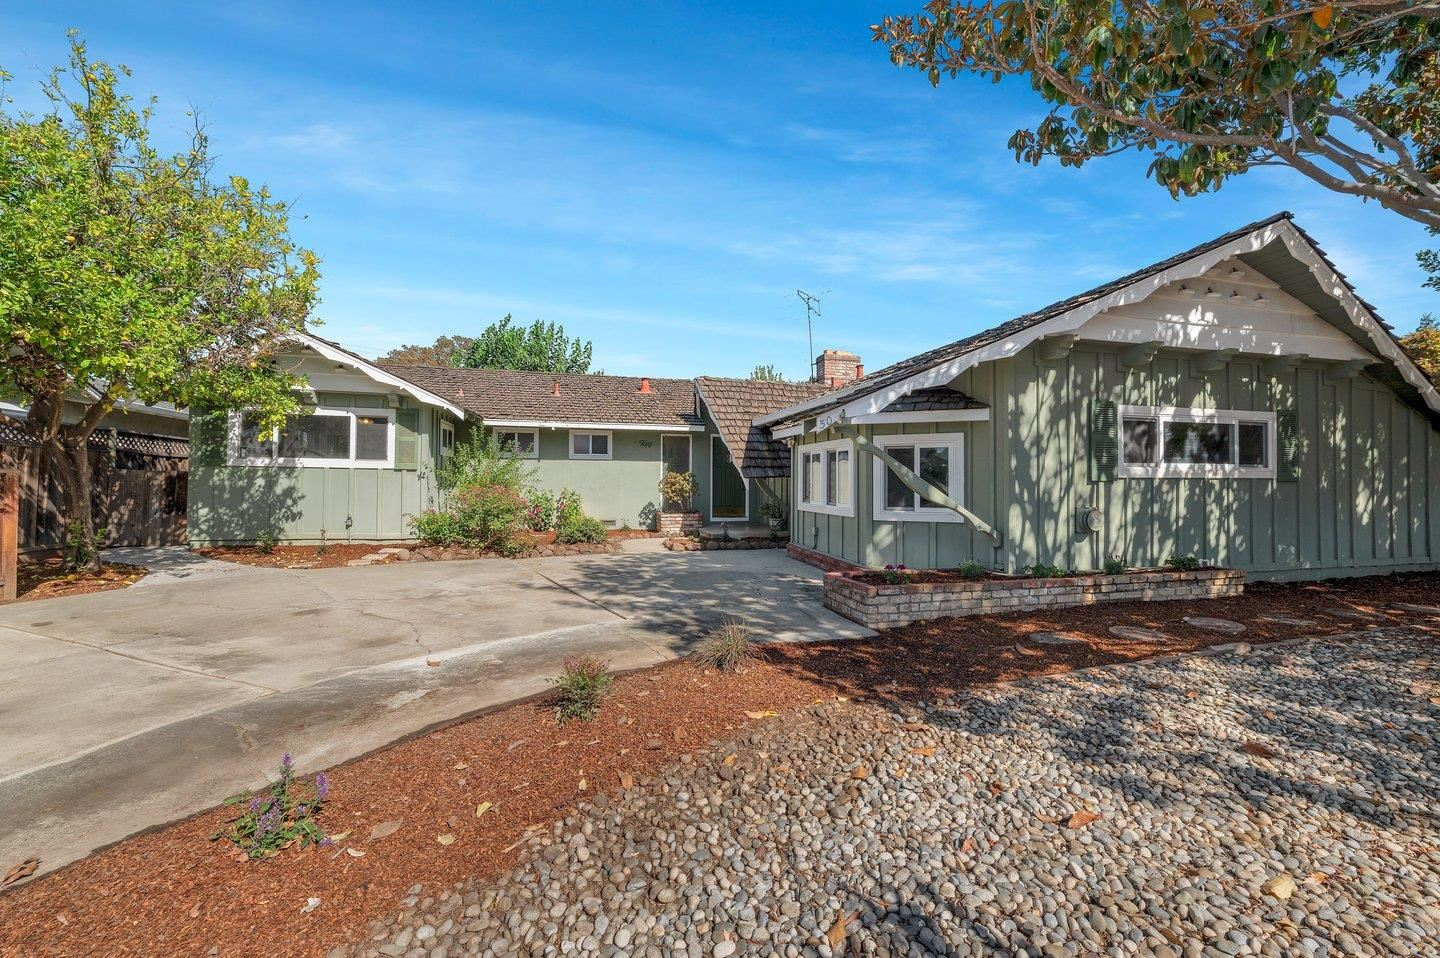 Photo for 50 North Midway Street, CAMPBELL, CA 95008 (MLS # ML81861018)